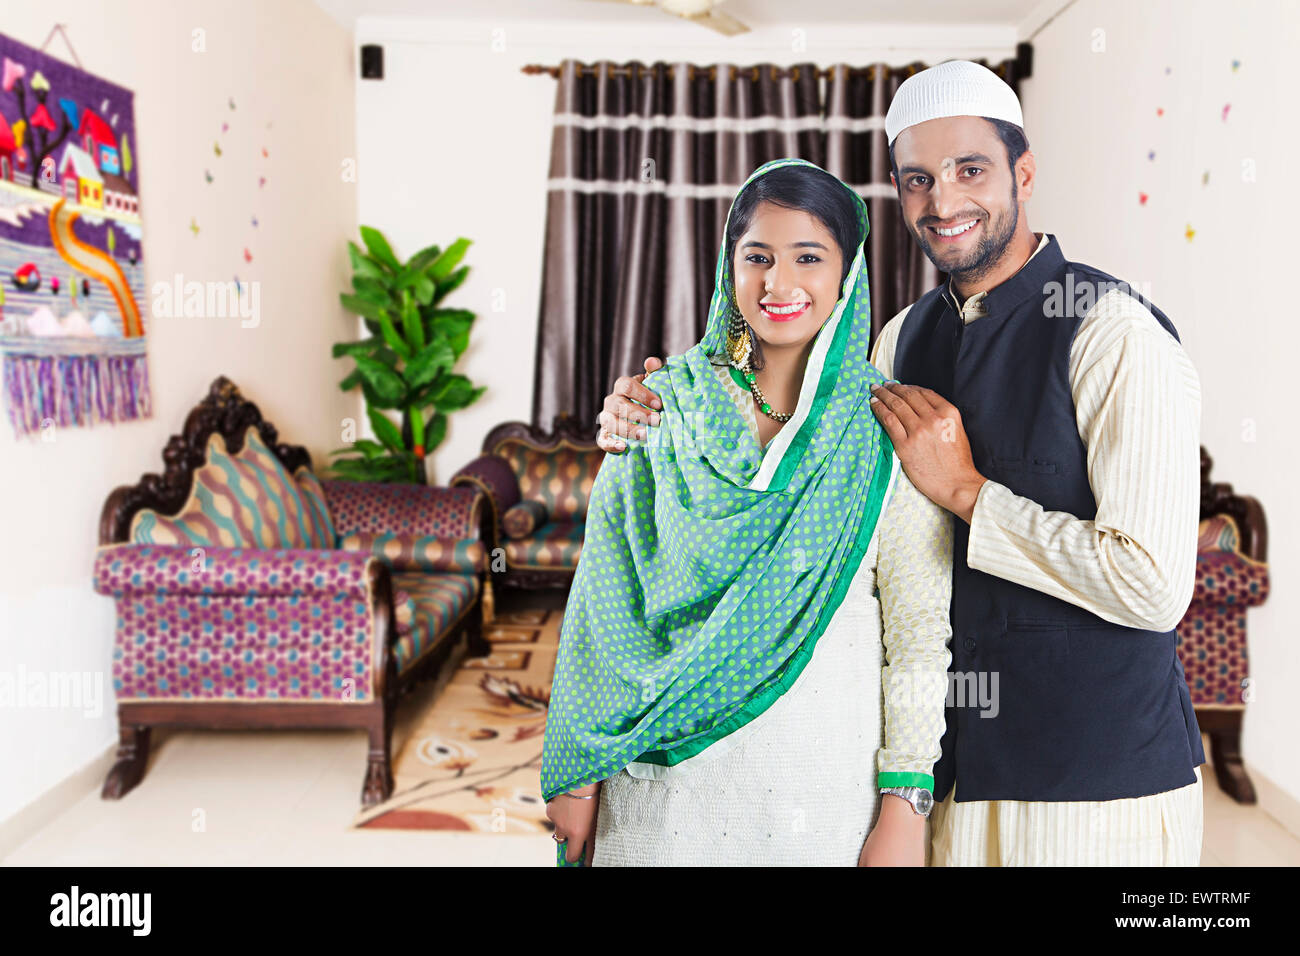 2 indian Muslim Married Couple Stock Photo: 84753327 - Alamy